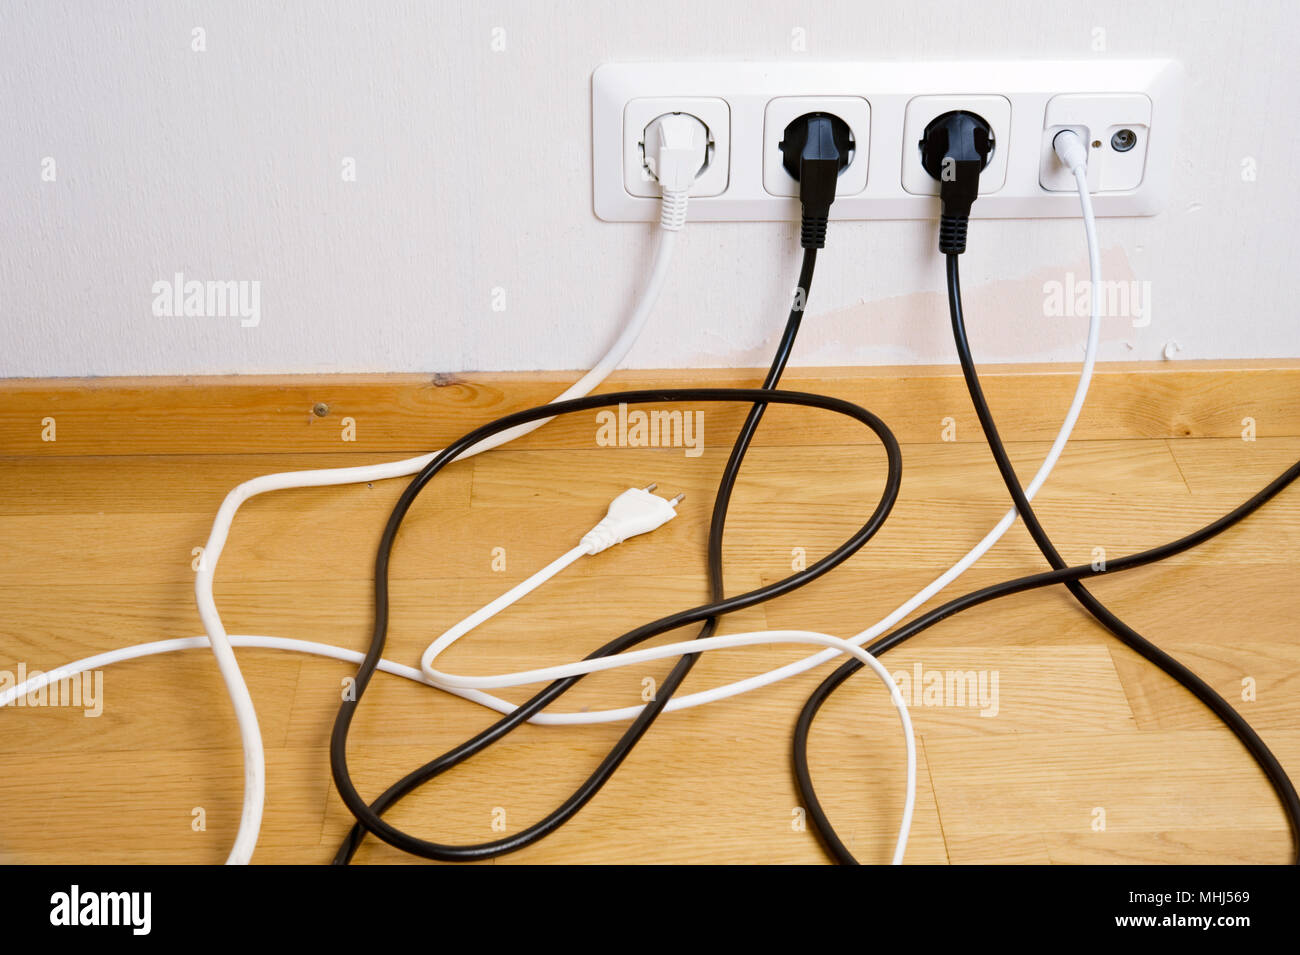 Electric And Aerial Outlet Sockets Plugs Cables Stock Wiring Cable